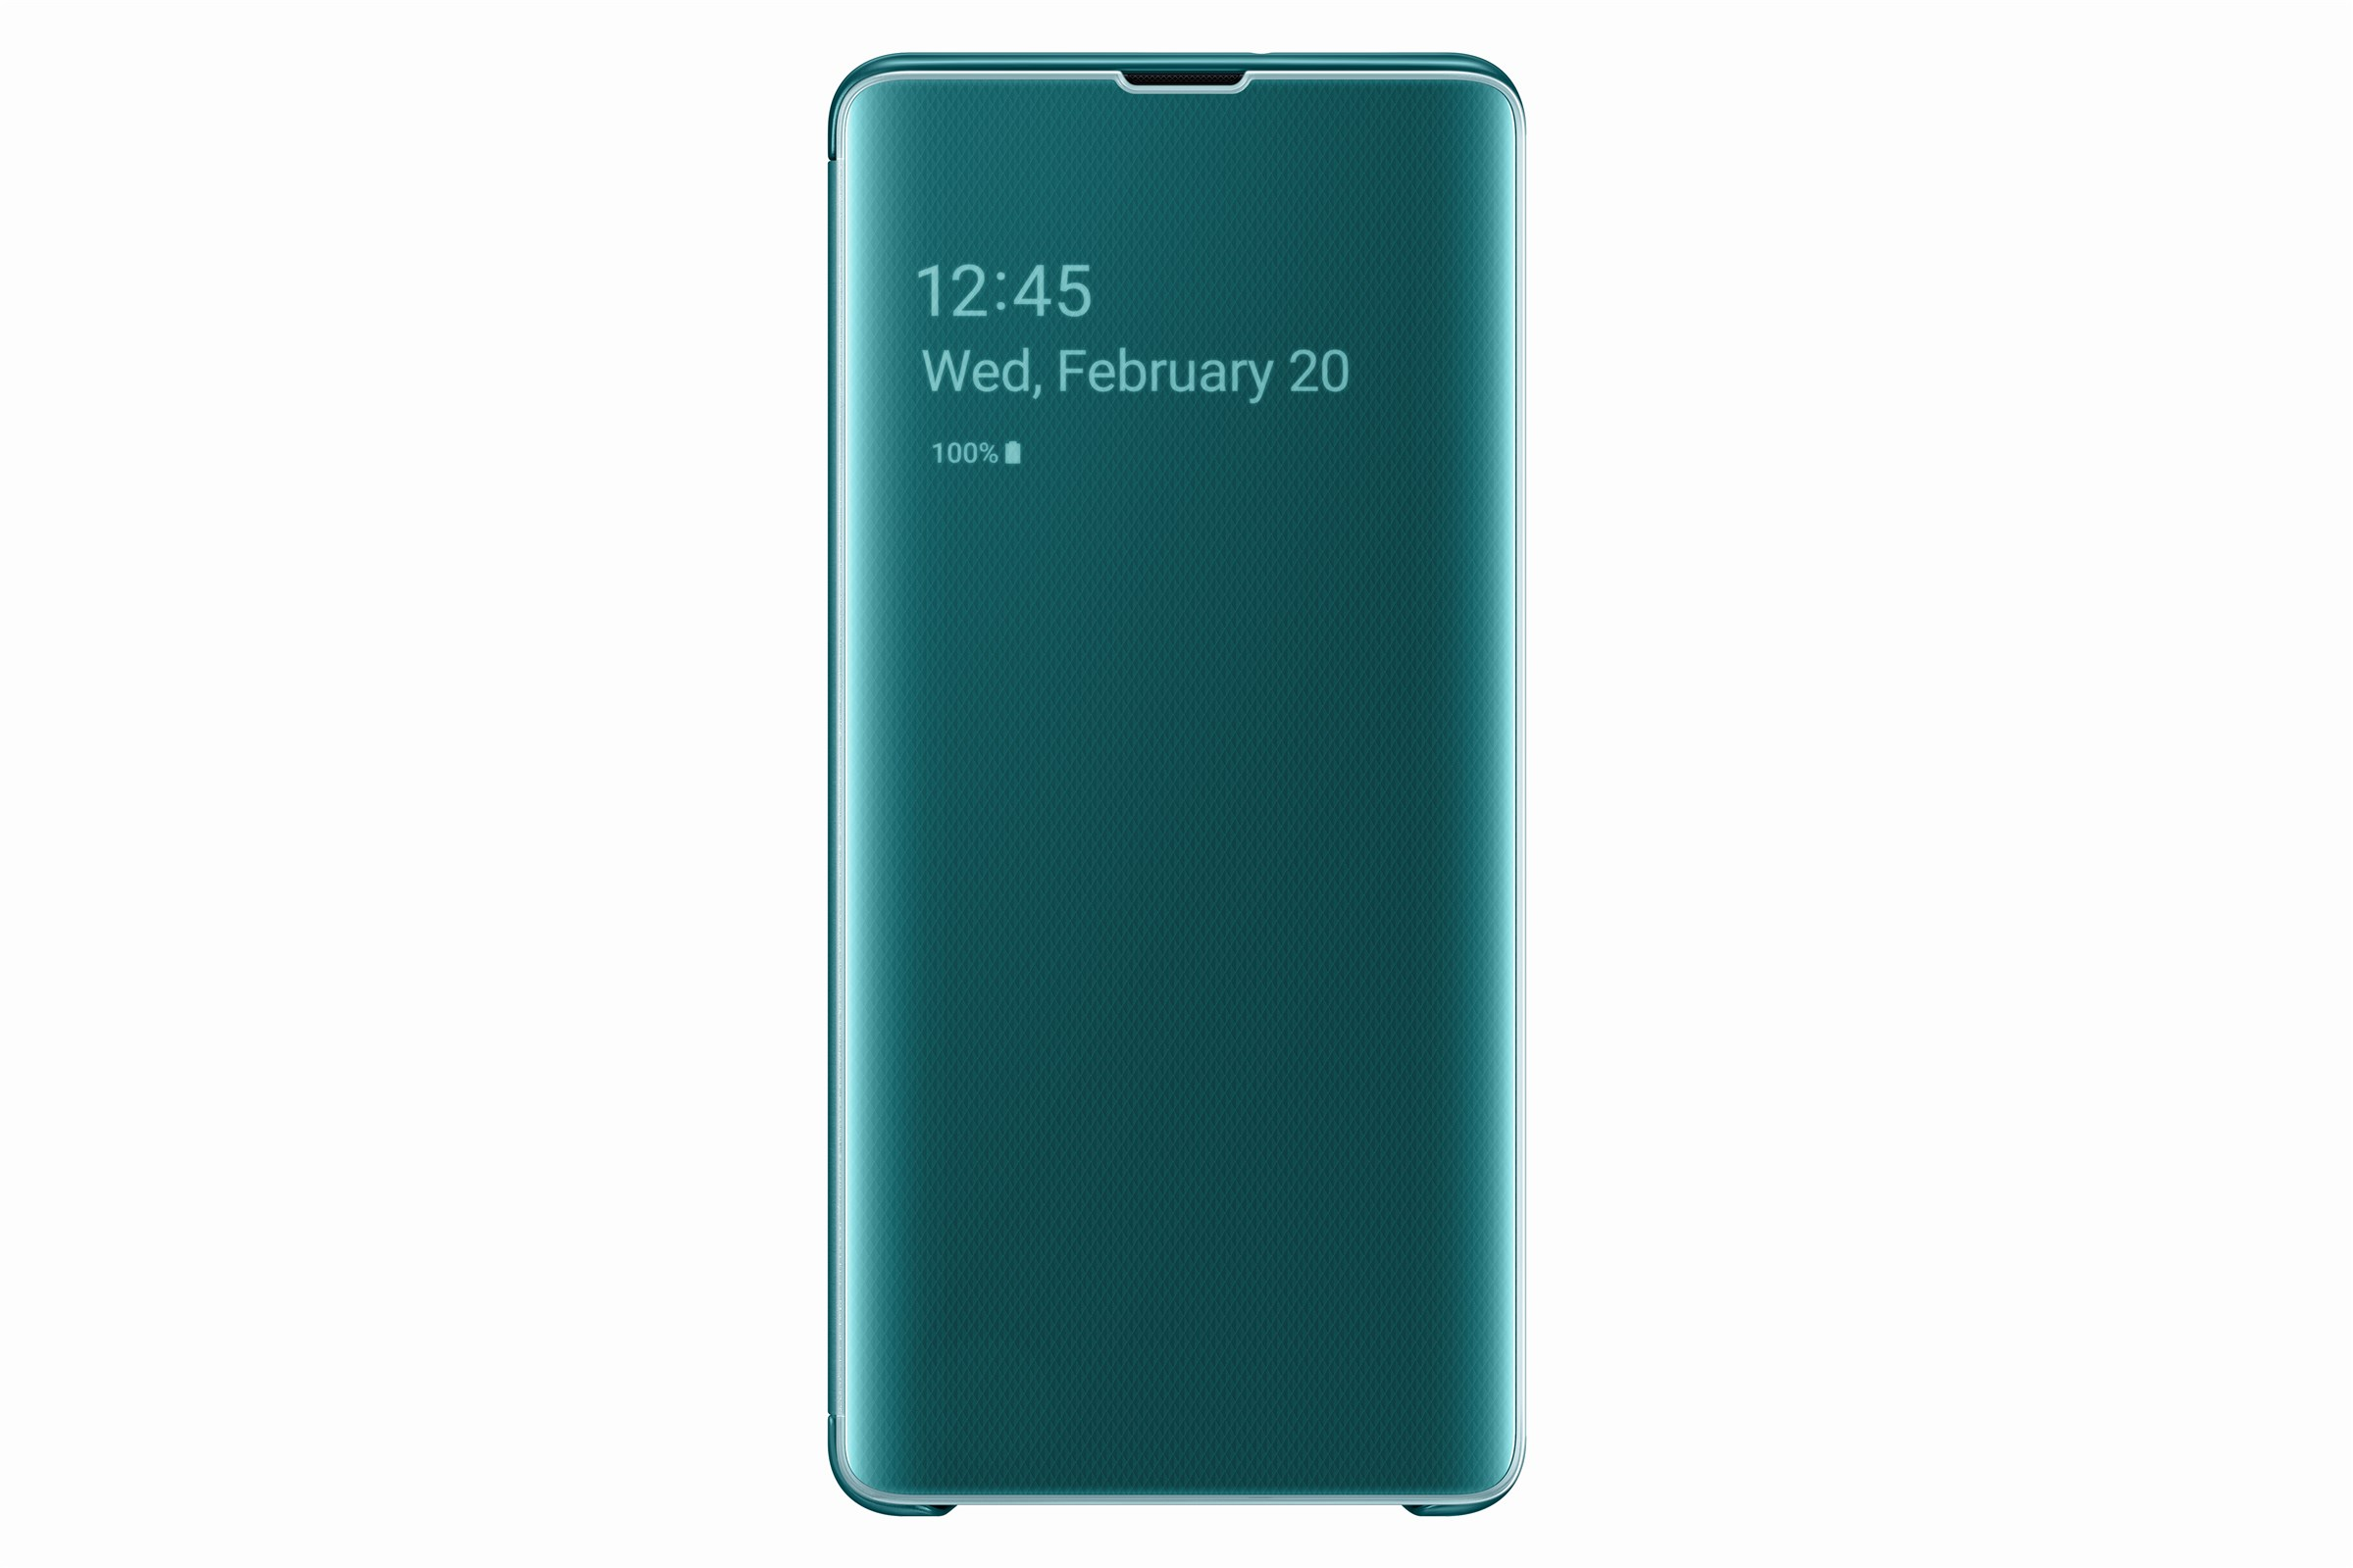 Samsung Clear View Cover Galaxy S10 Plus Green EF-ZG975CGEGWW